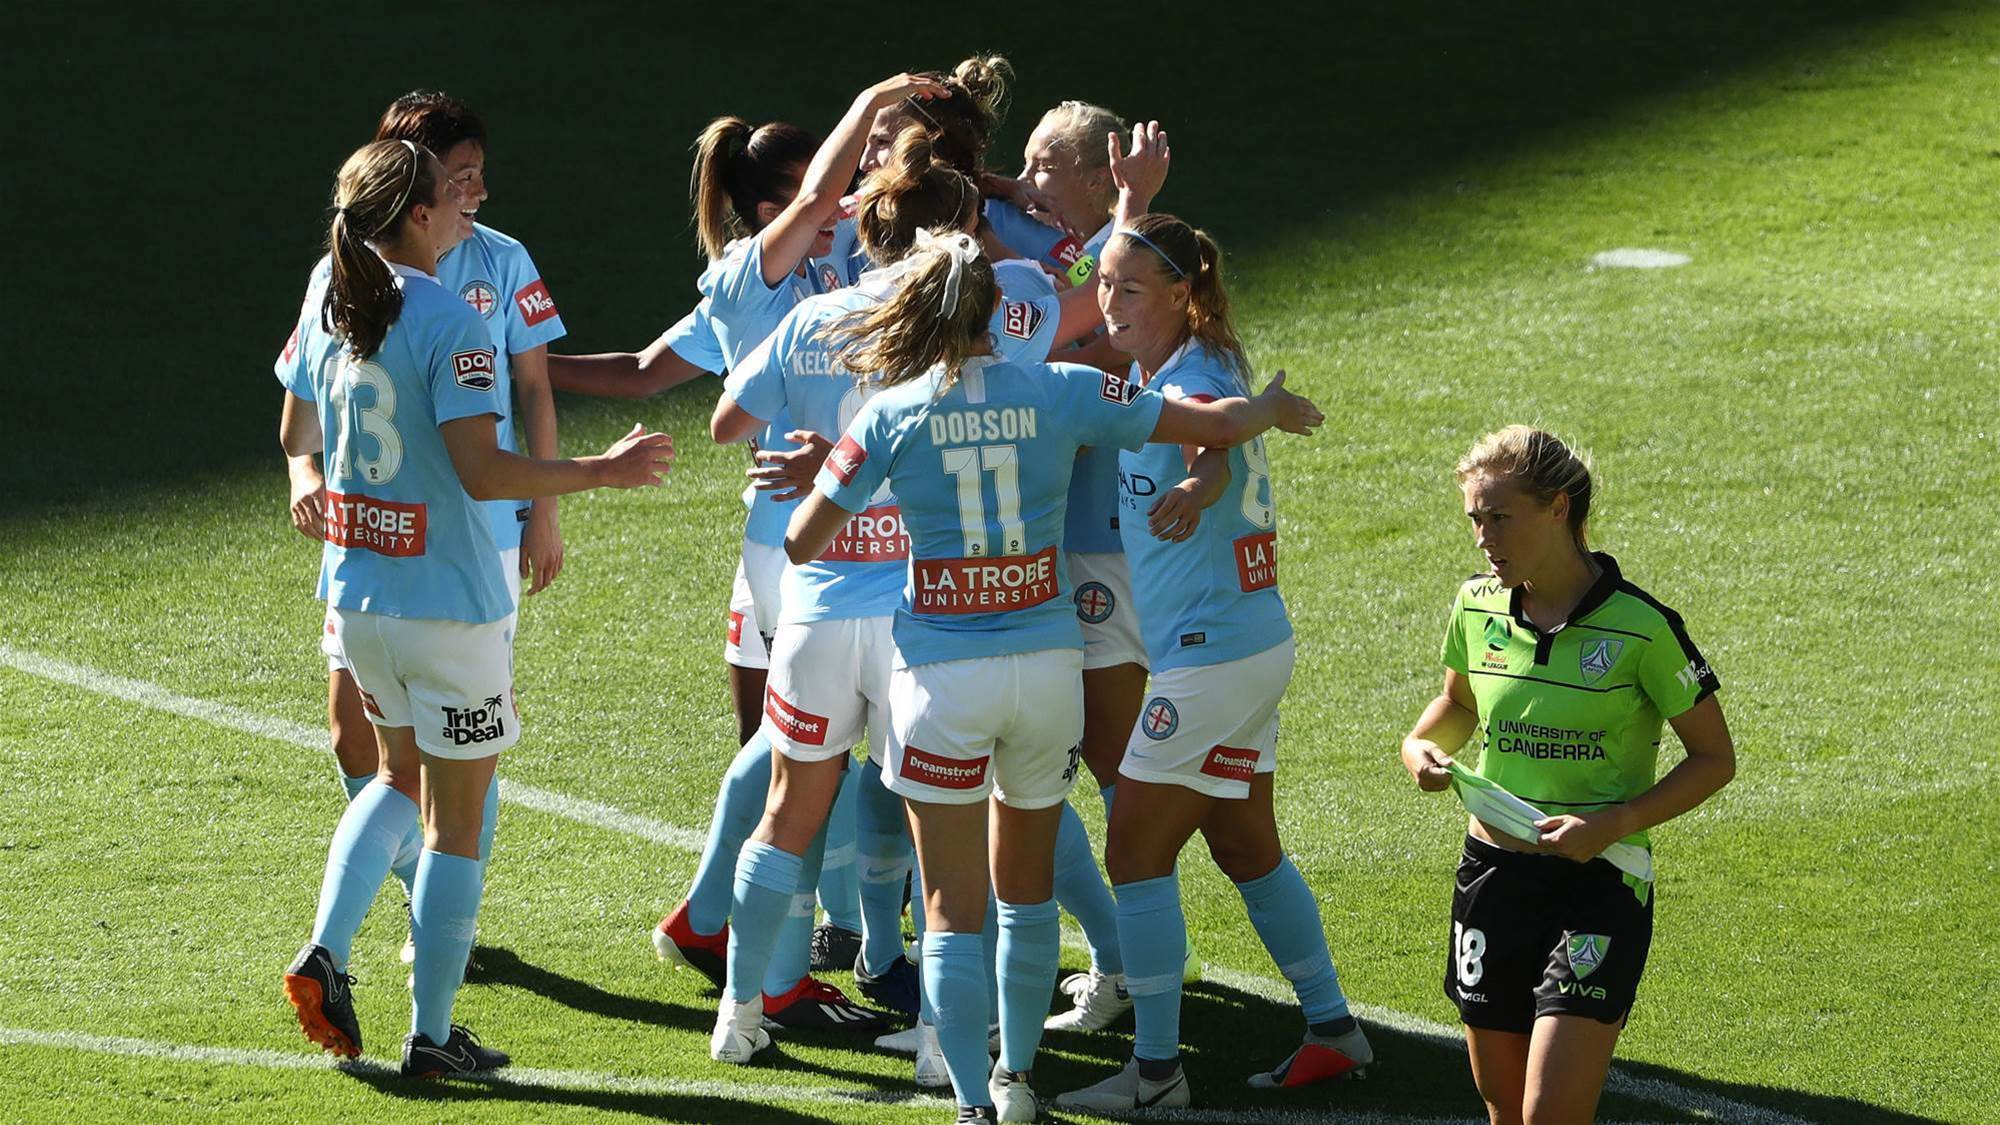 City find their groove against Canberra